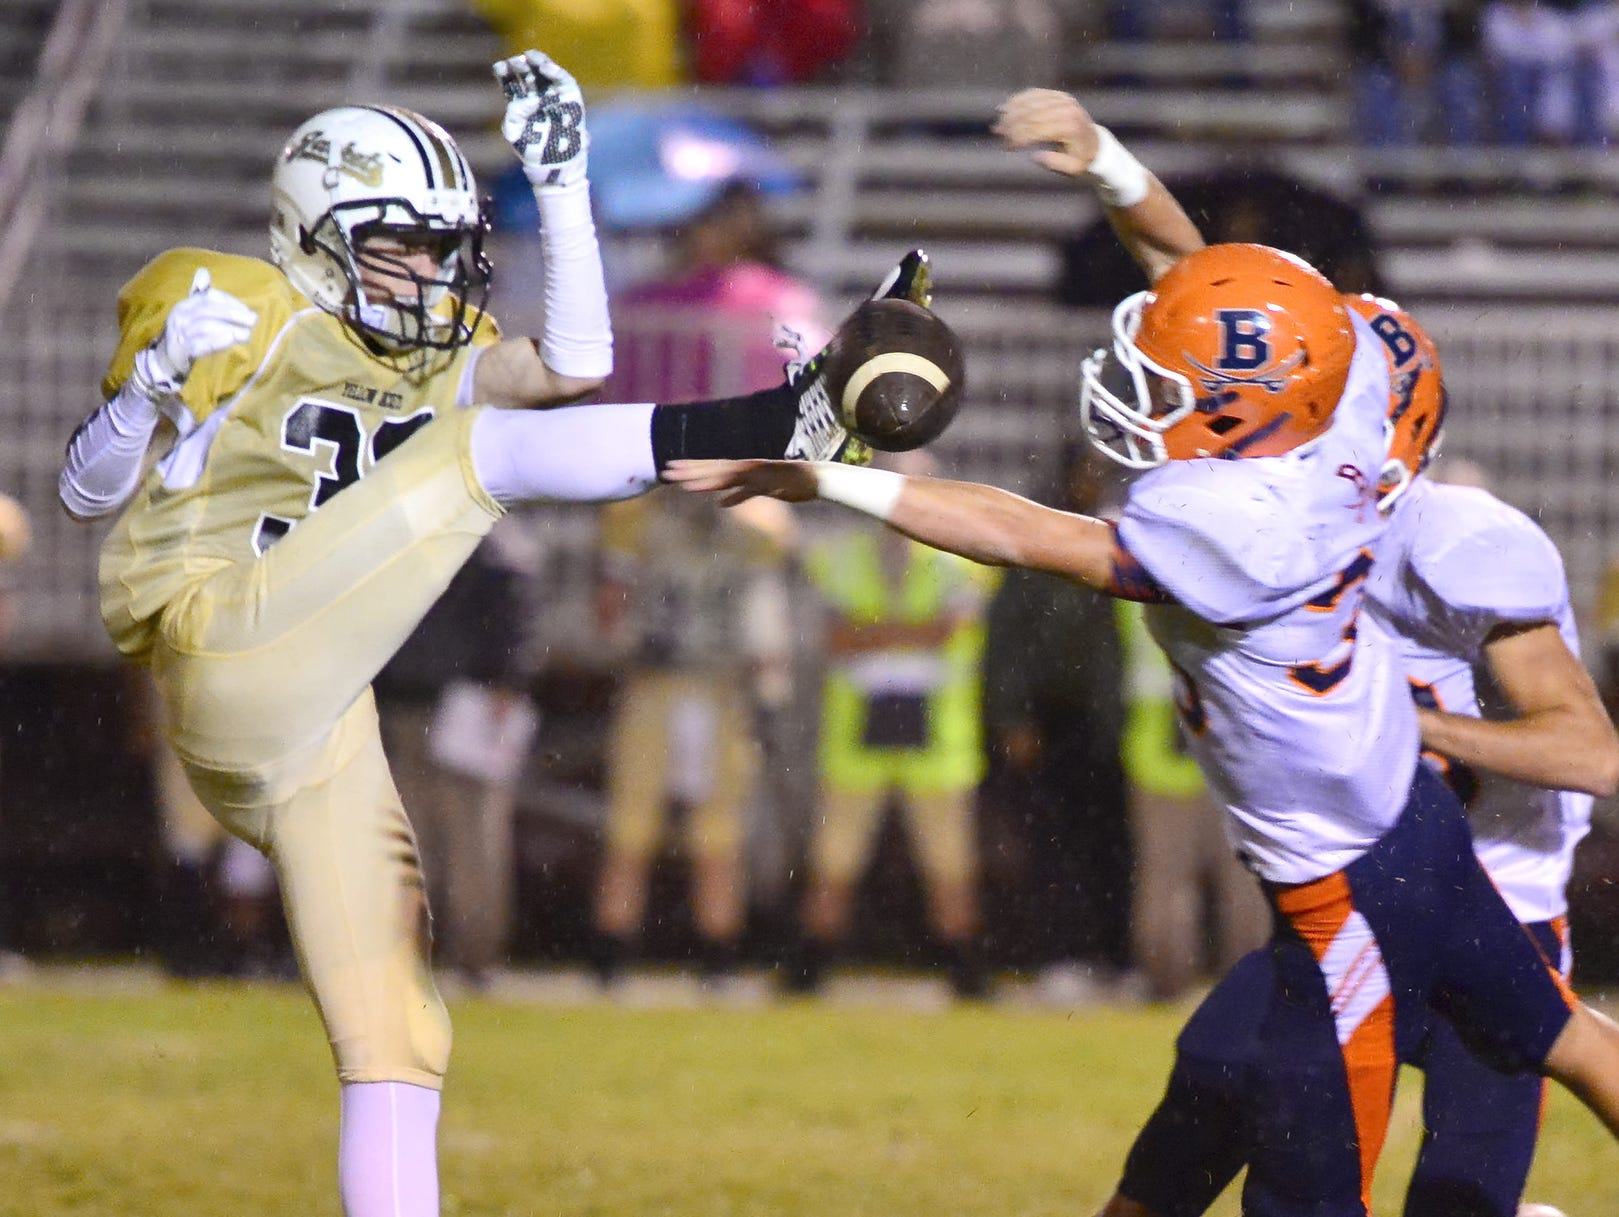 Beech defensive back, Beech's Chris Peach blocks a punt attempt by Springfield's Bryan Hayes Friday night..